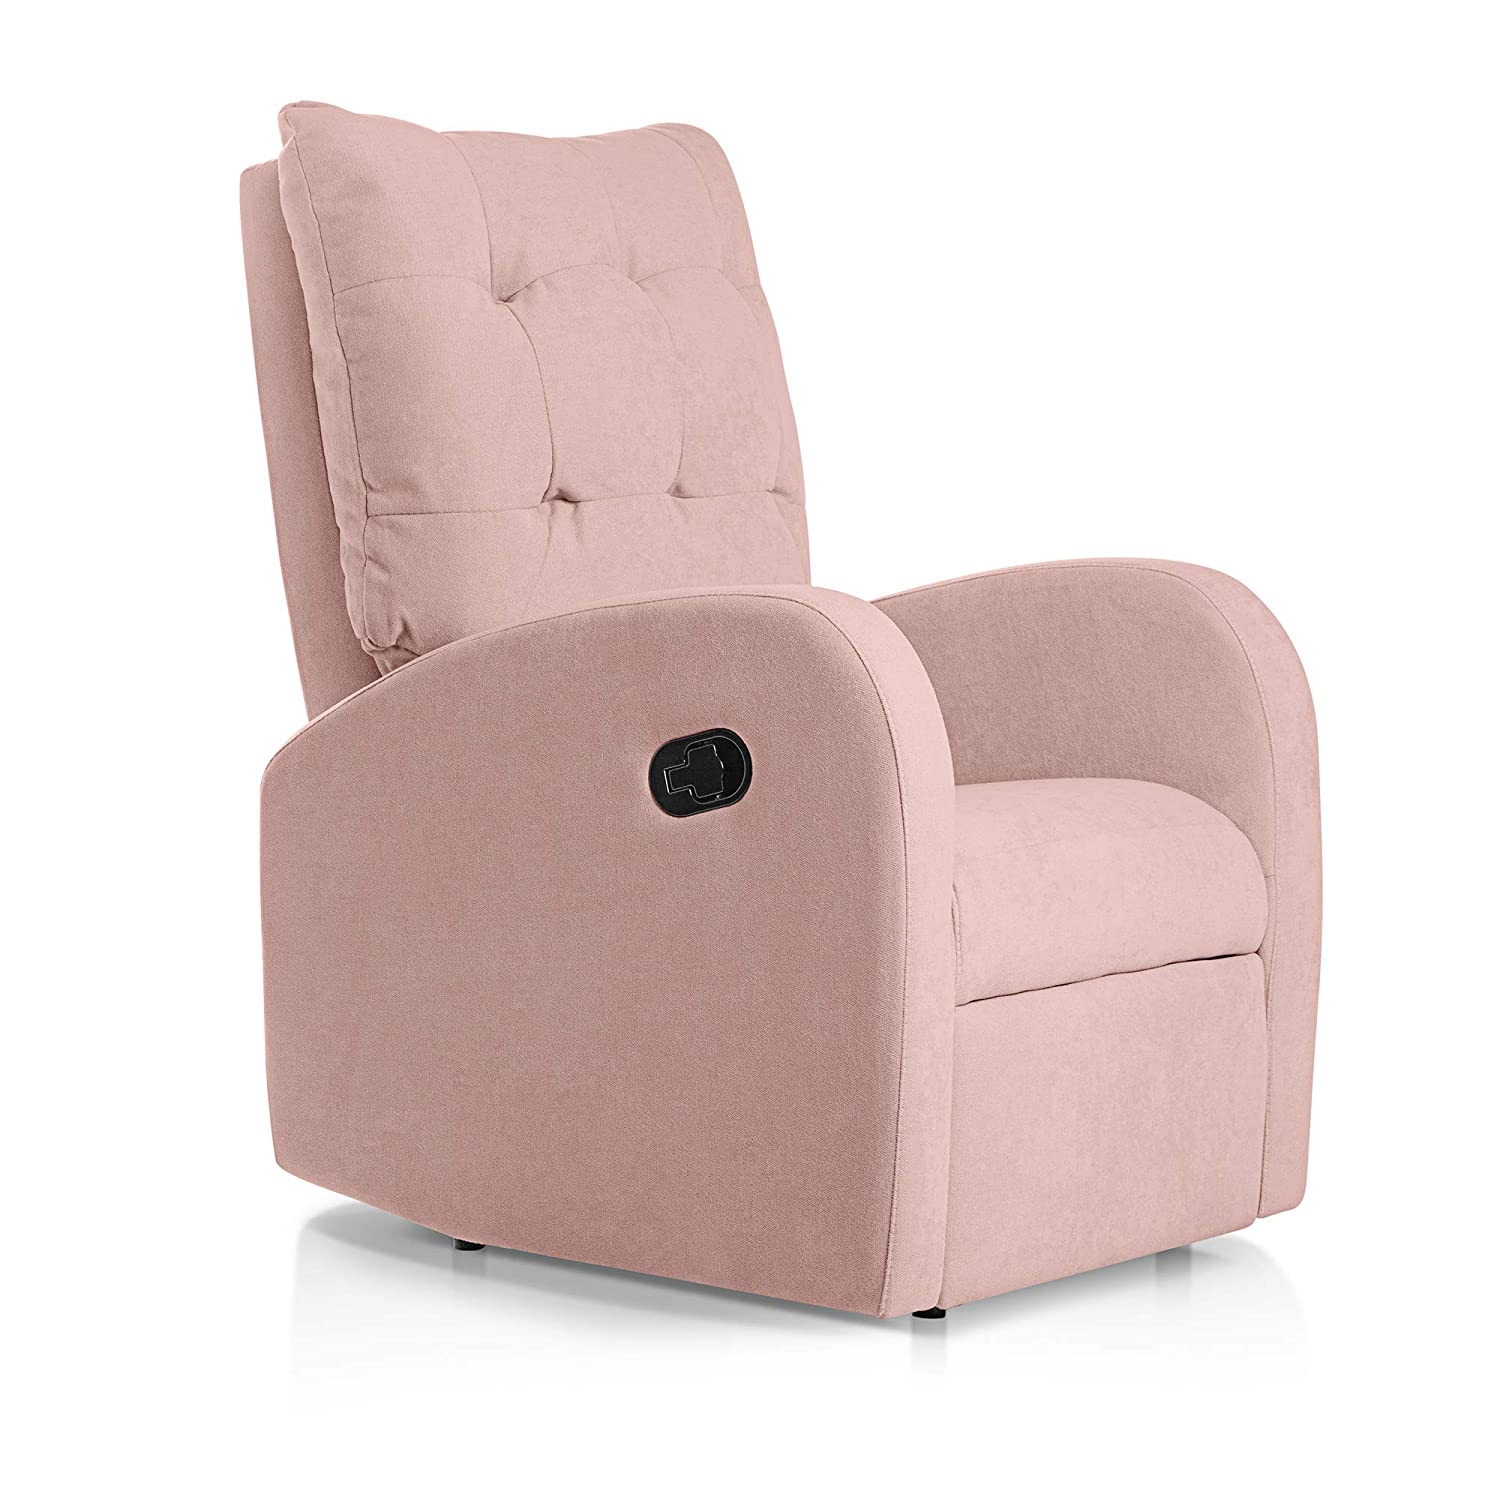 SUENOSZZZ-ESPECIALISTAS DEL DESCANSO Sillon Relax reclinable Soft tapizado Tela Antimanchas Color Salmon | Sillon reclinable butaca Relax | Sillon ...